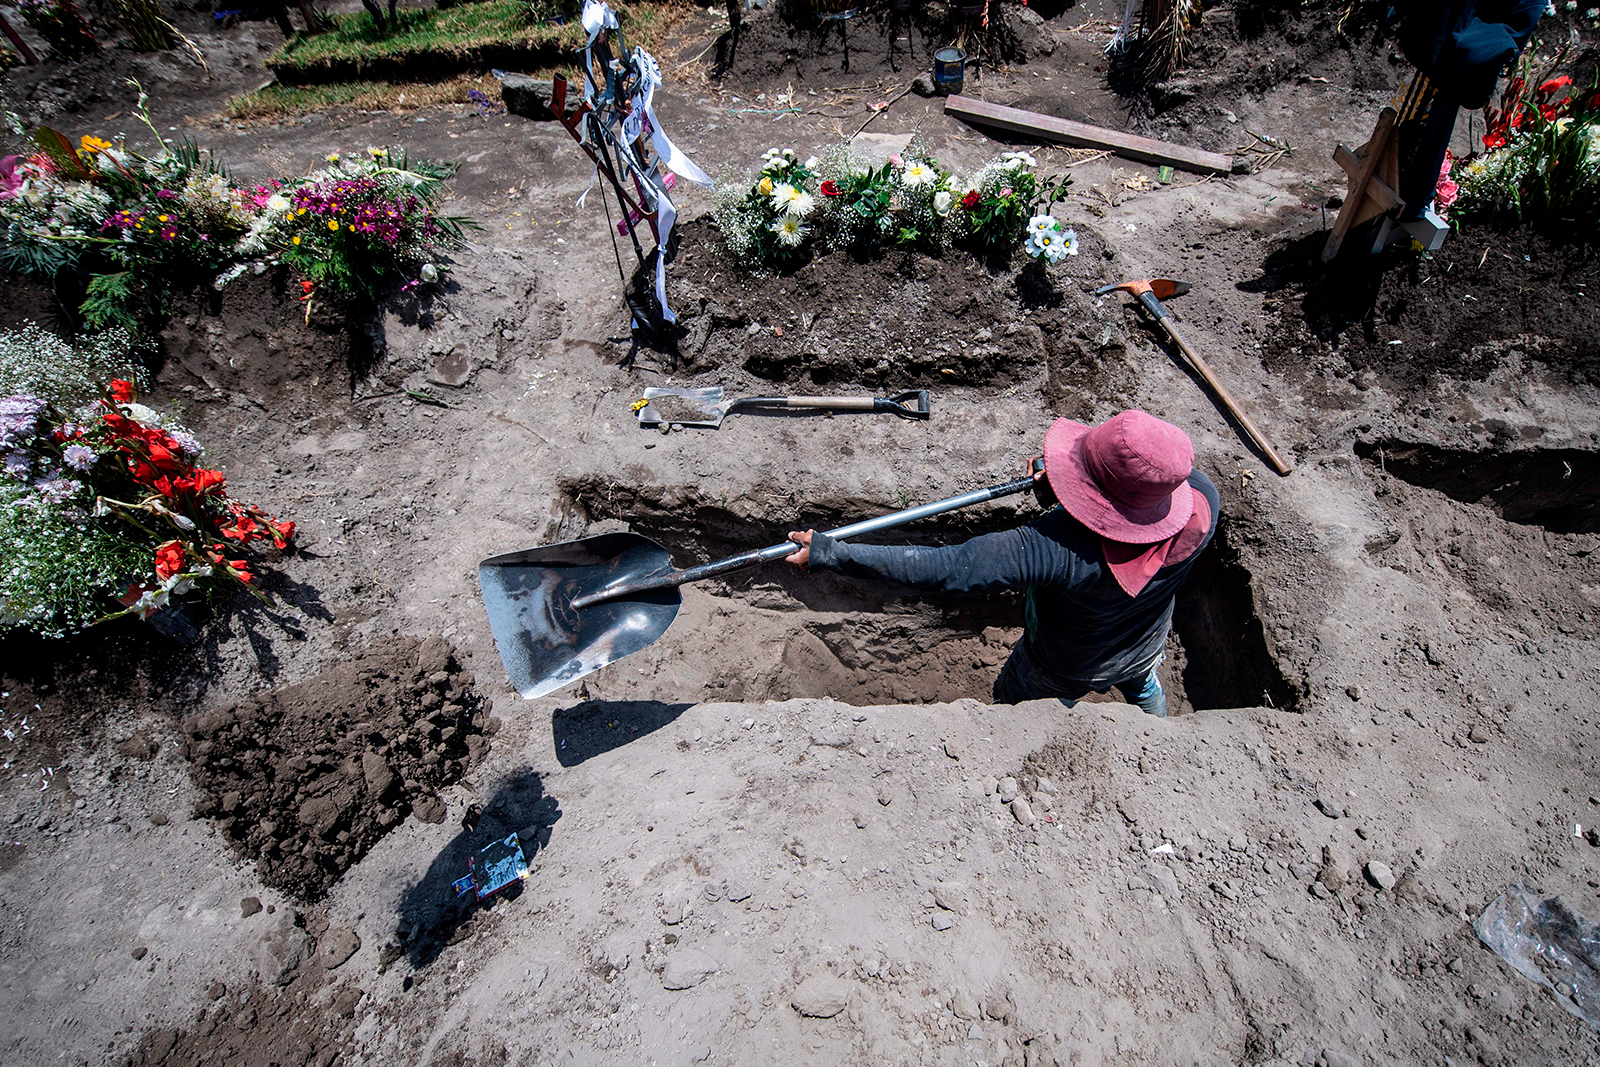 A gravedigger digs a grave during a funeral at the San Miguel Xico cemetery in Mexico on August 5.